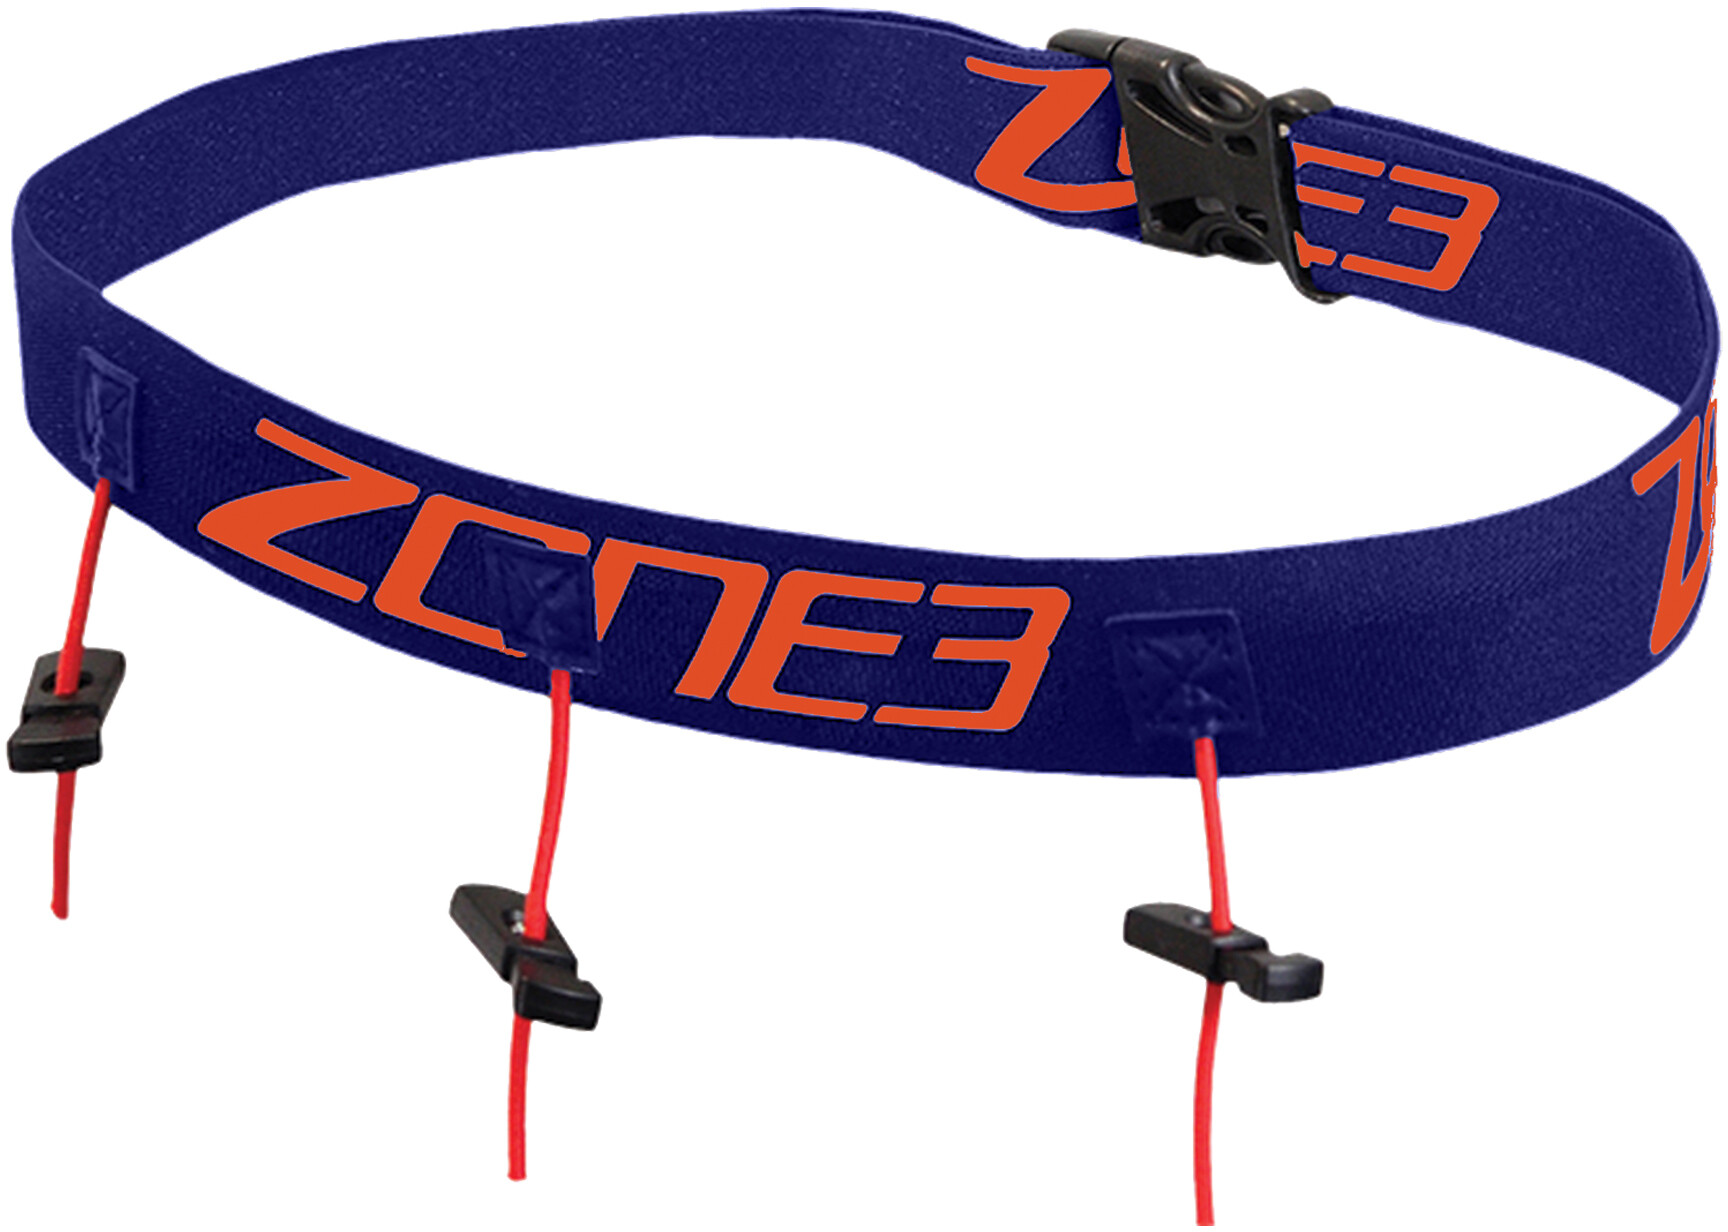 Zone3 Race Belt with Gel Loops, navy/orange (2019) | misc_clothes